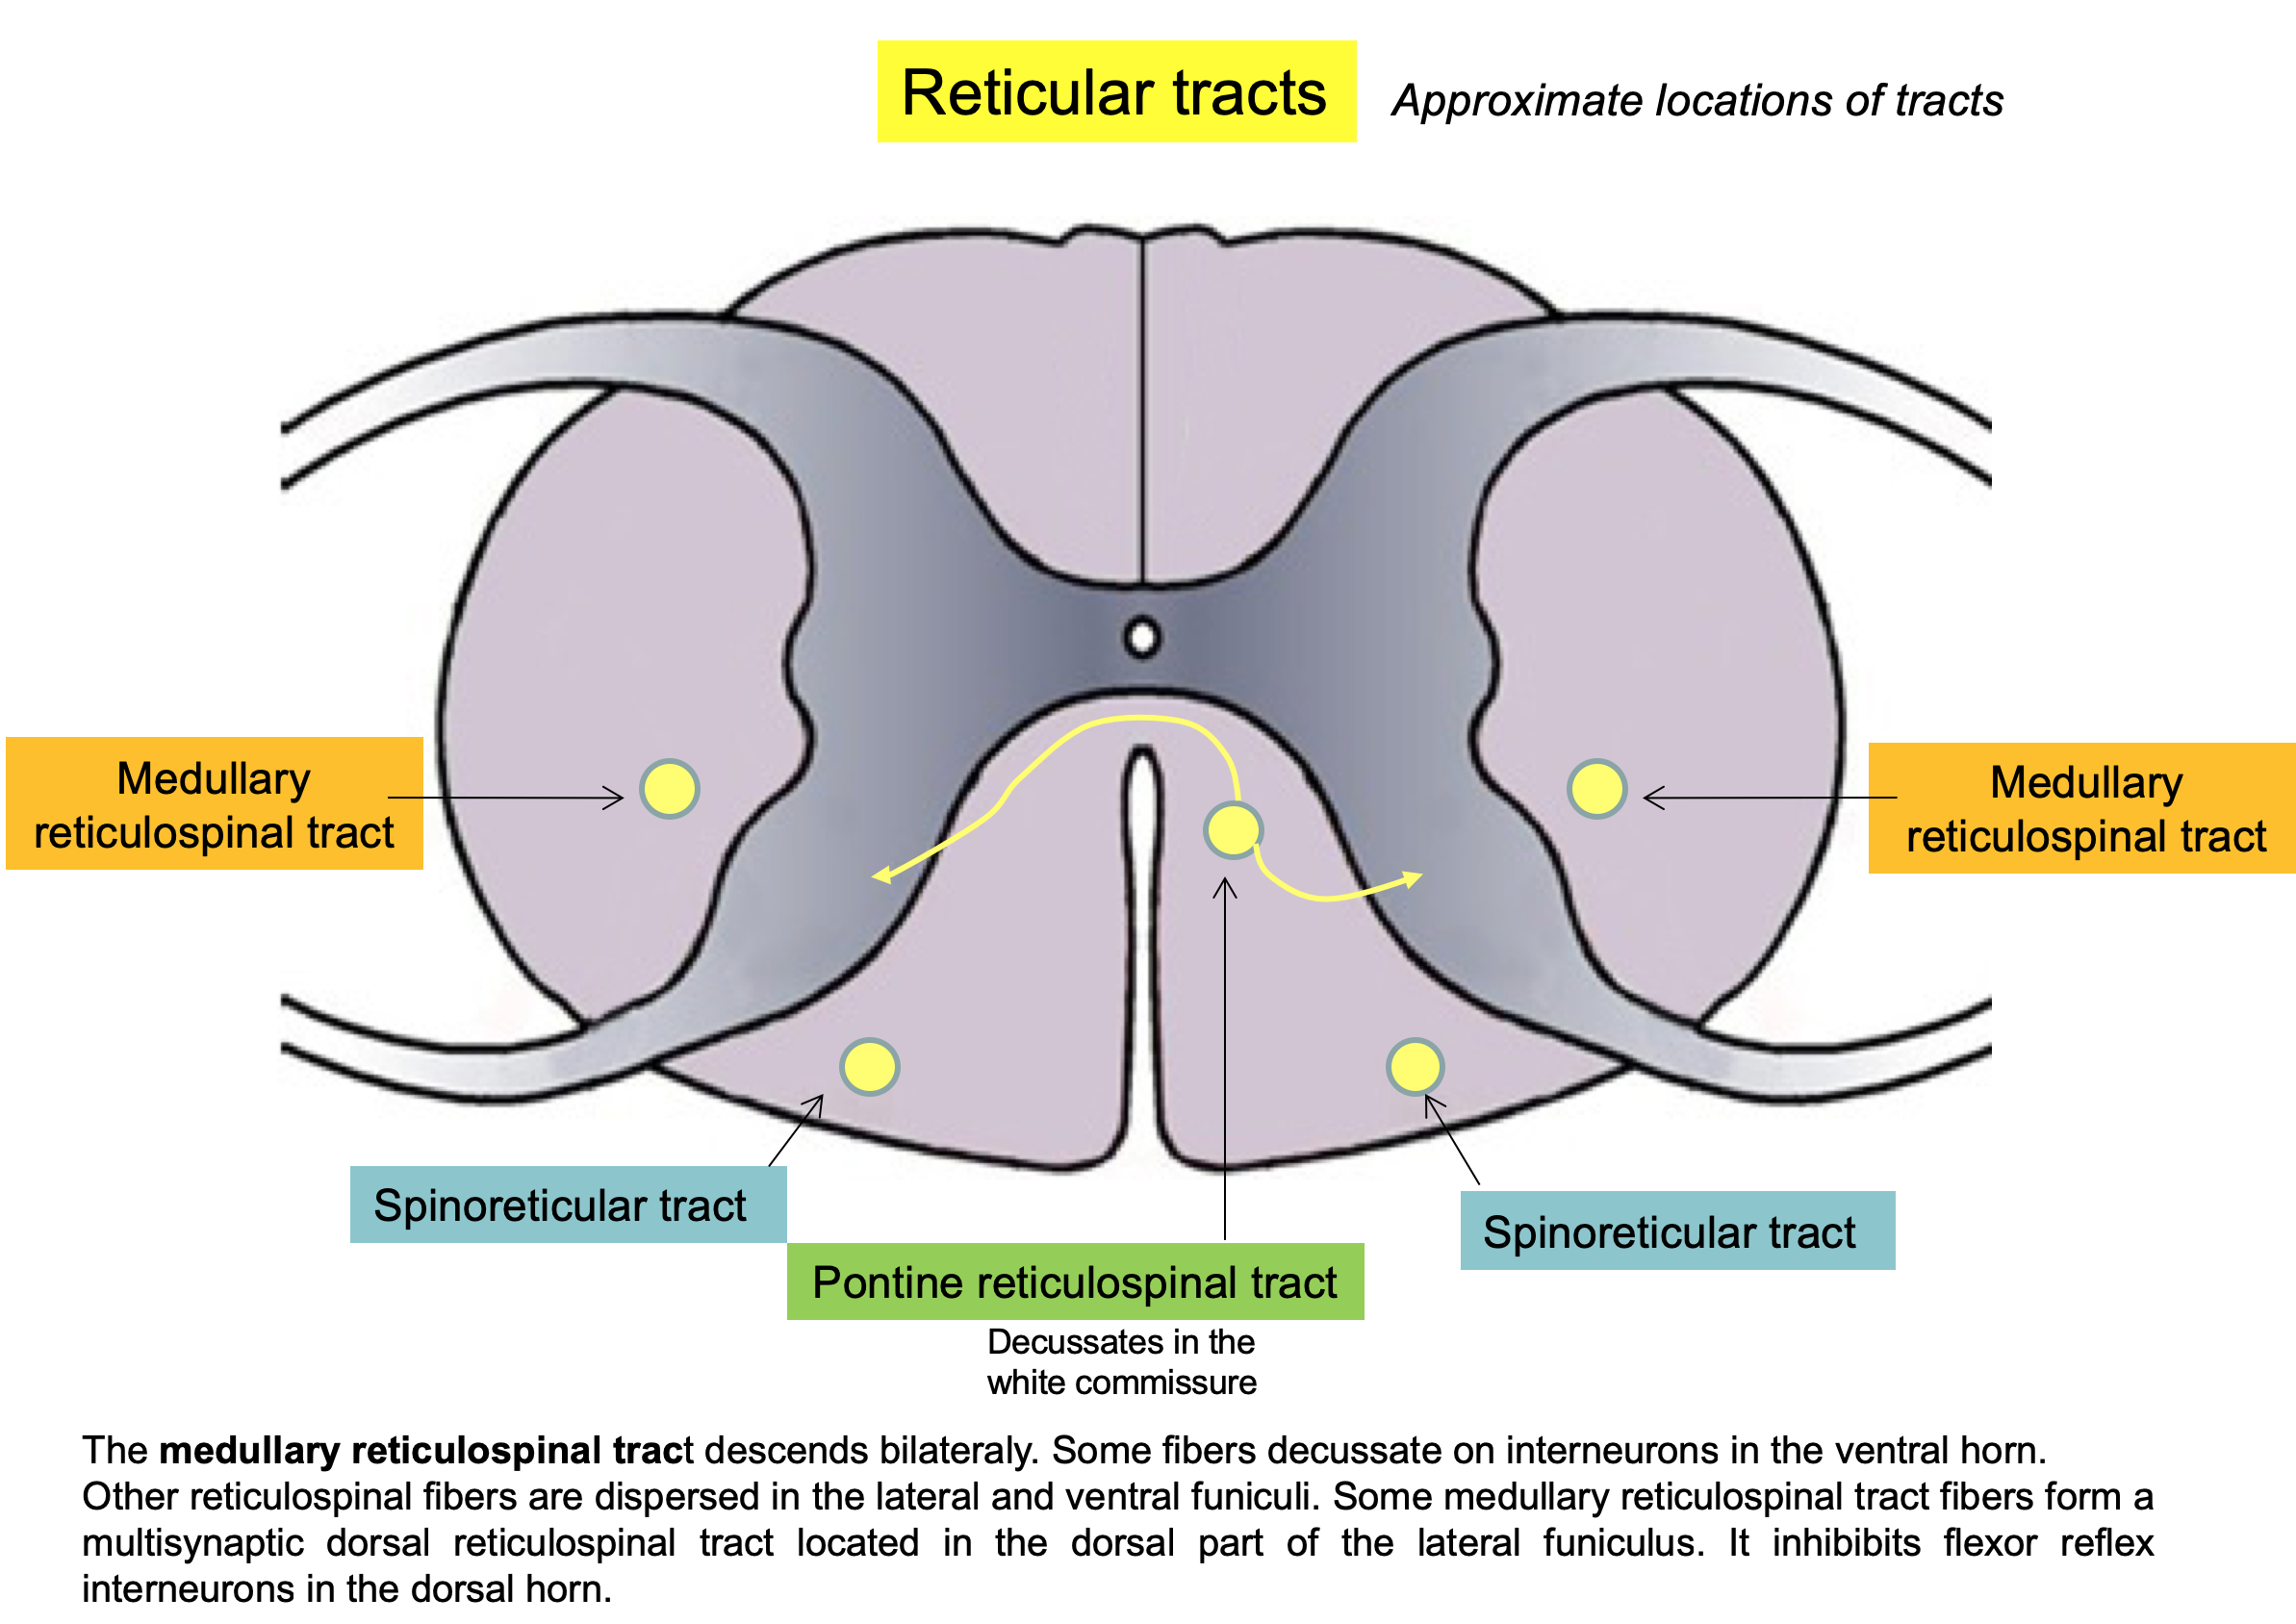 Reticular tracts 1